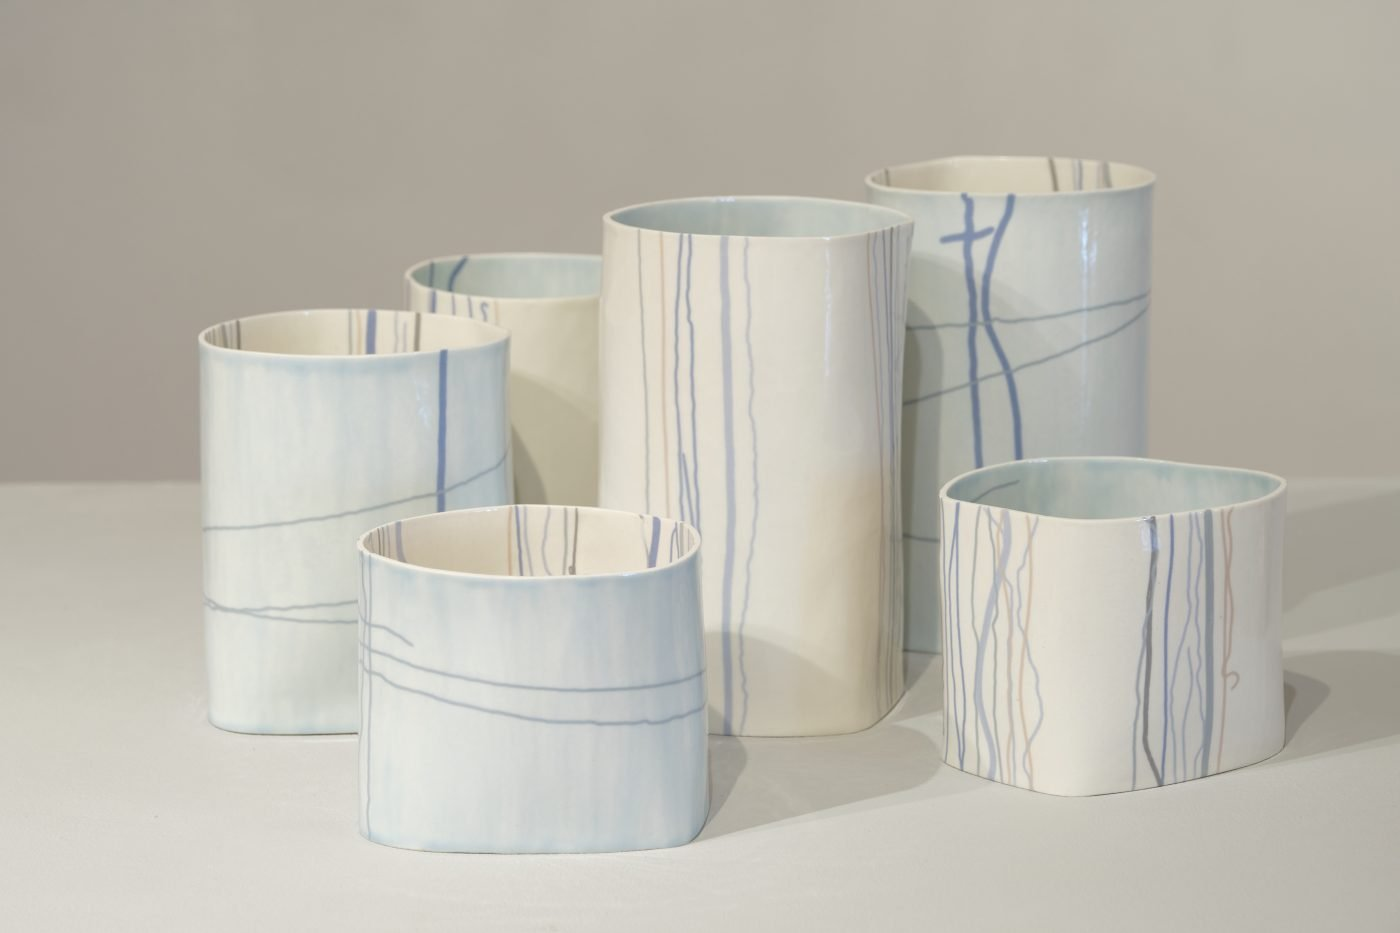 Six ceramic vessels of differing heights in neutral and blue tones with linear decoration on the inside and outside